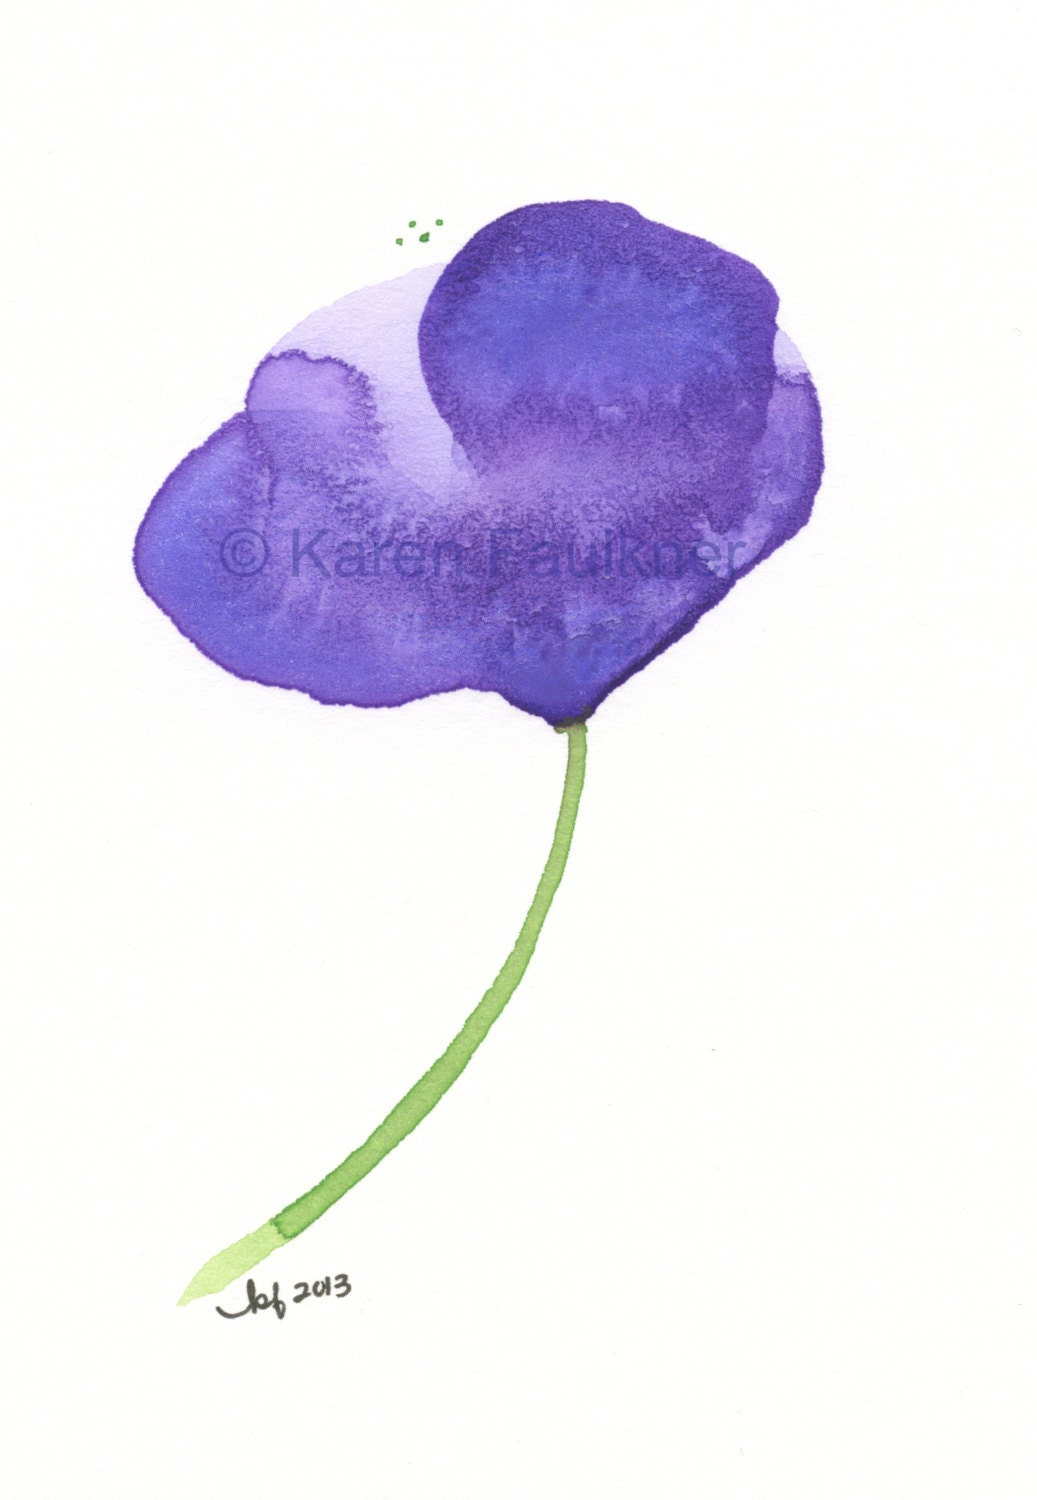 Watercolor Flower Print Of A Single Purple Summer Breeze